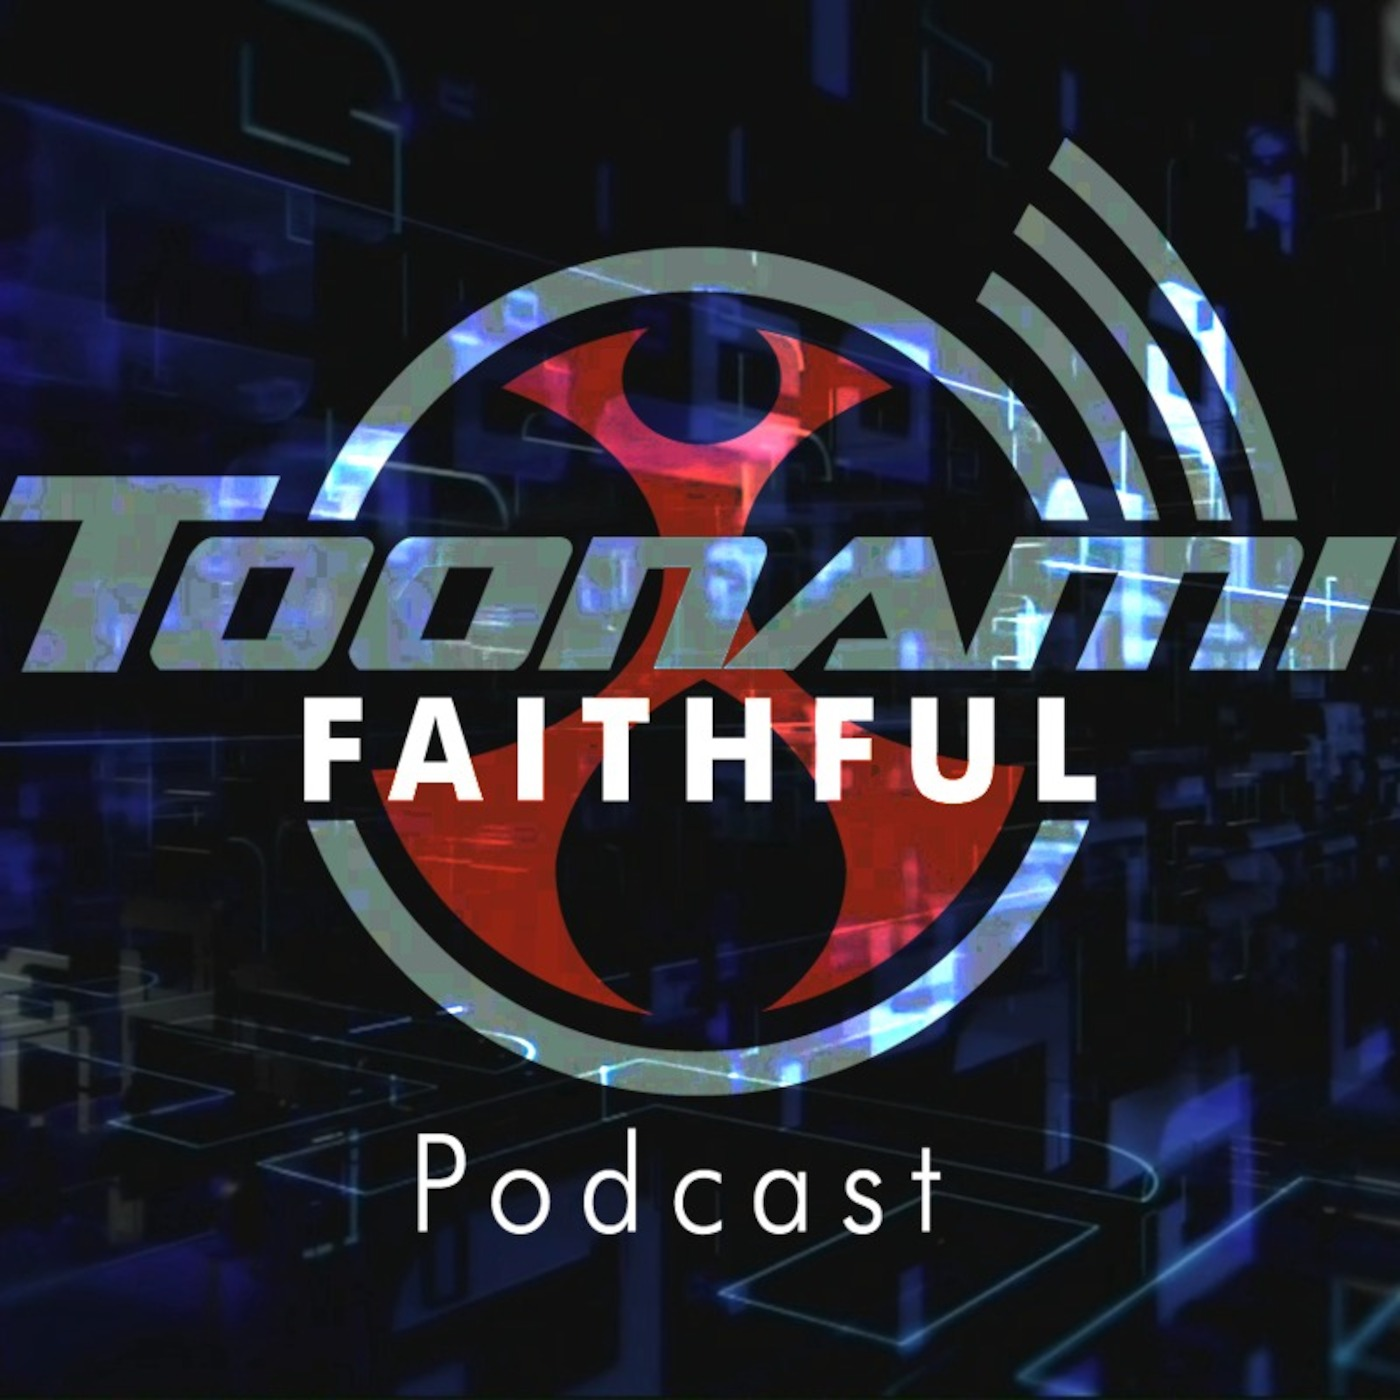 Toonami Faithful's Podcast